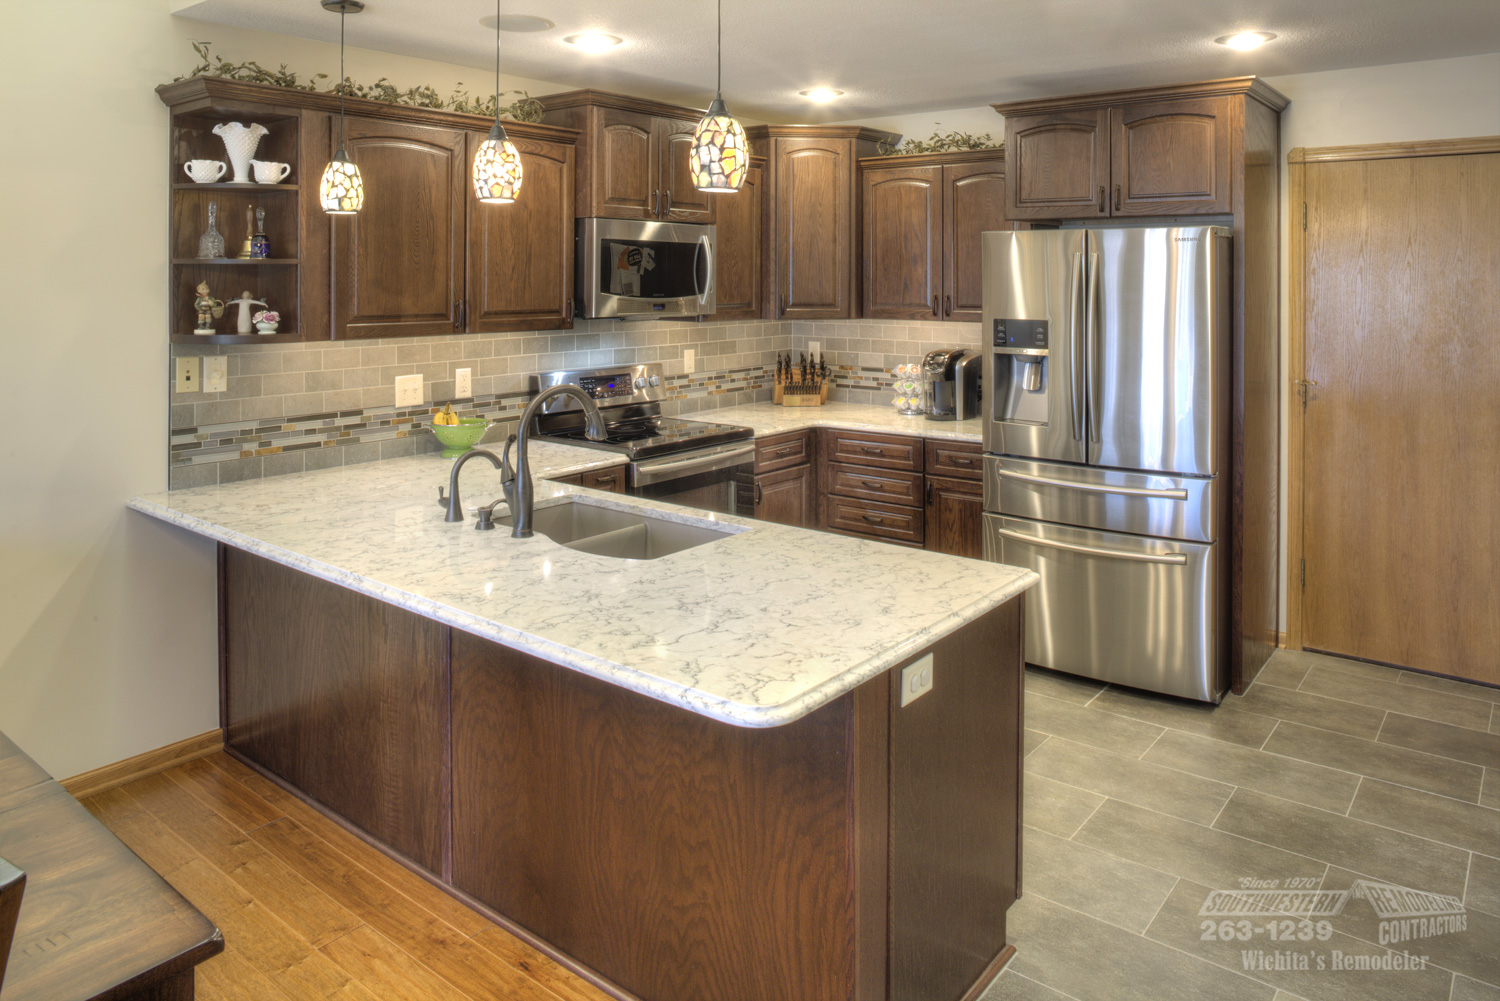 1 · kitchen remodeling wichita home remodeling